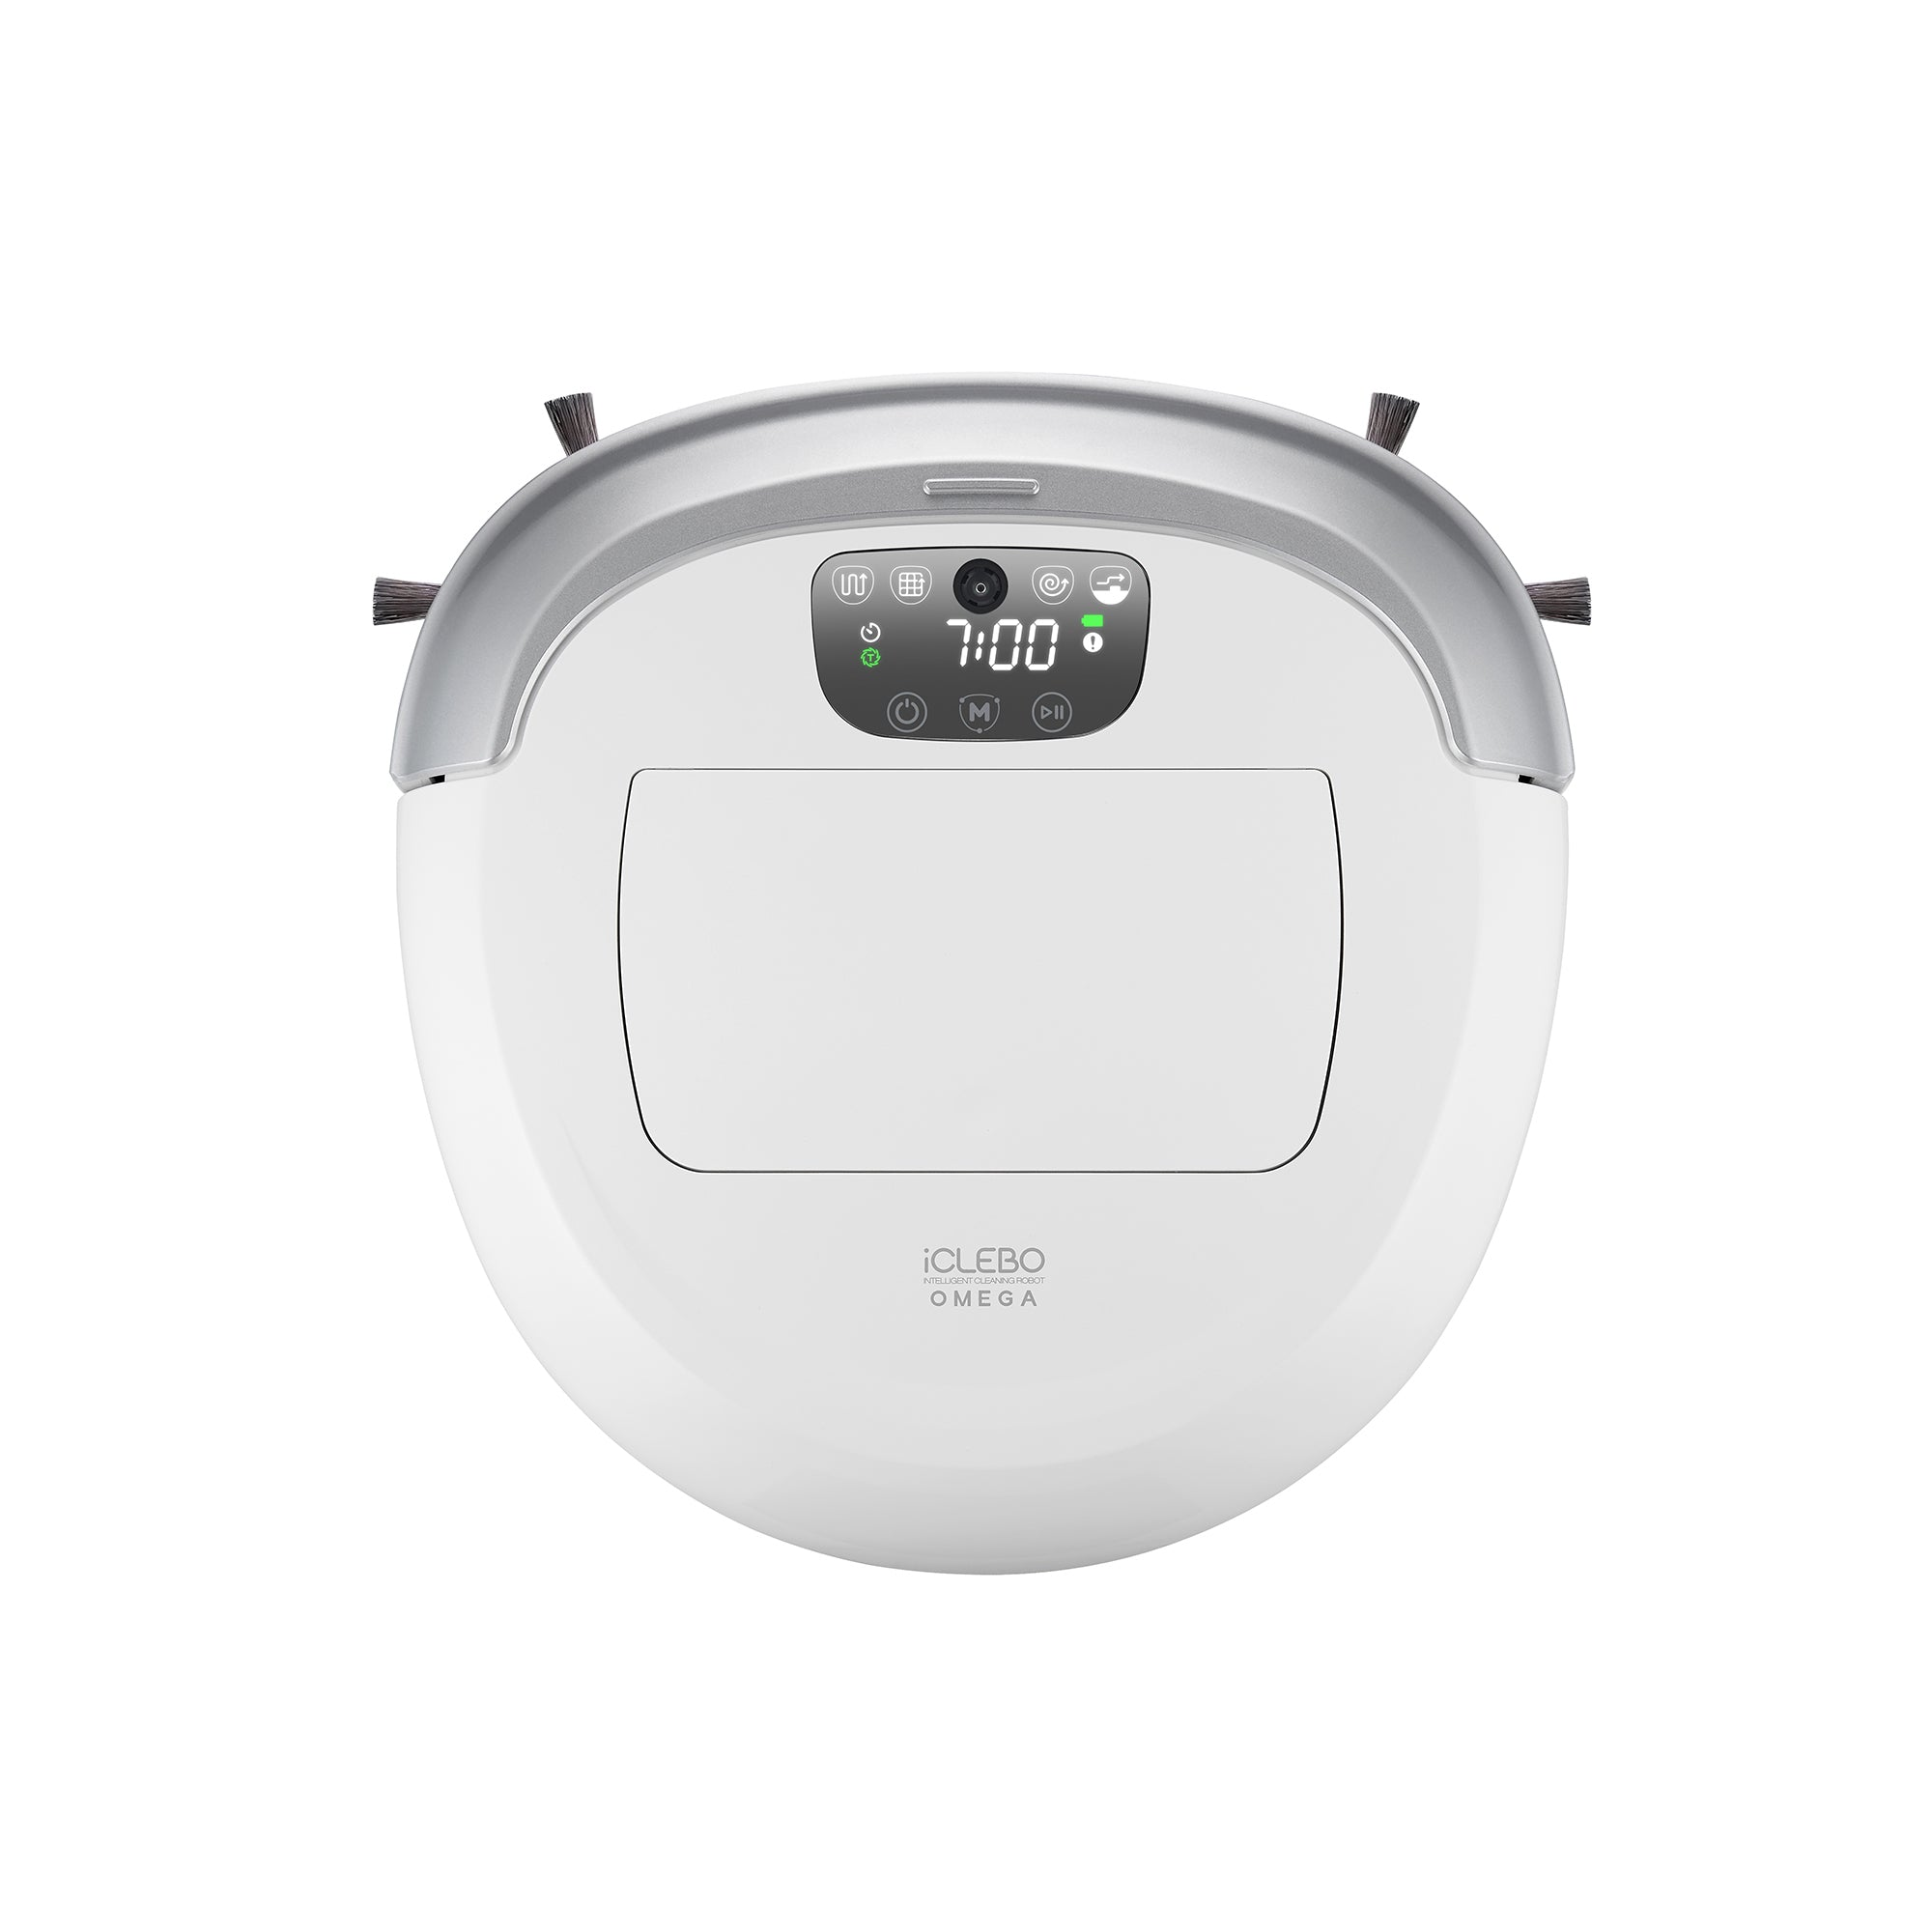 Robot Vacuum Co iClebo Omega W Robot Vacuum Cleaner in White